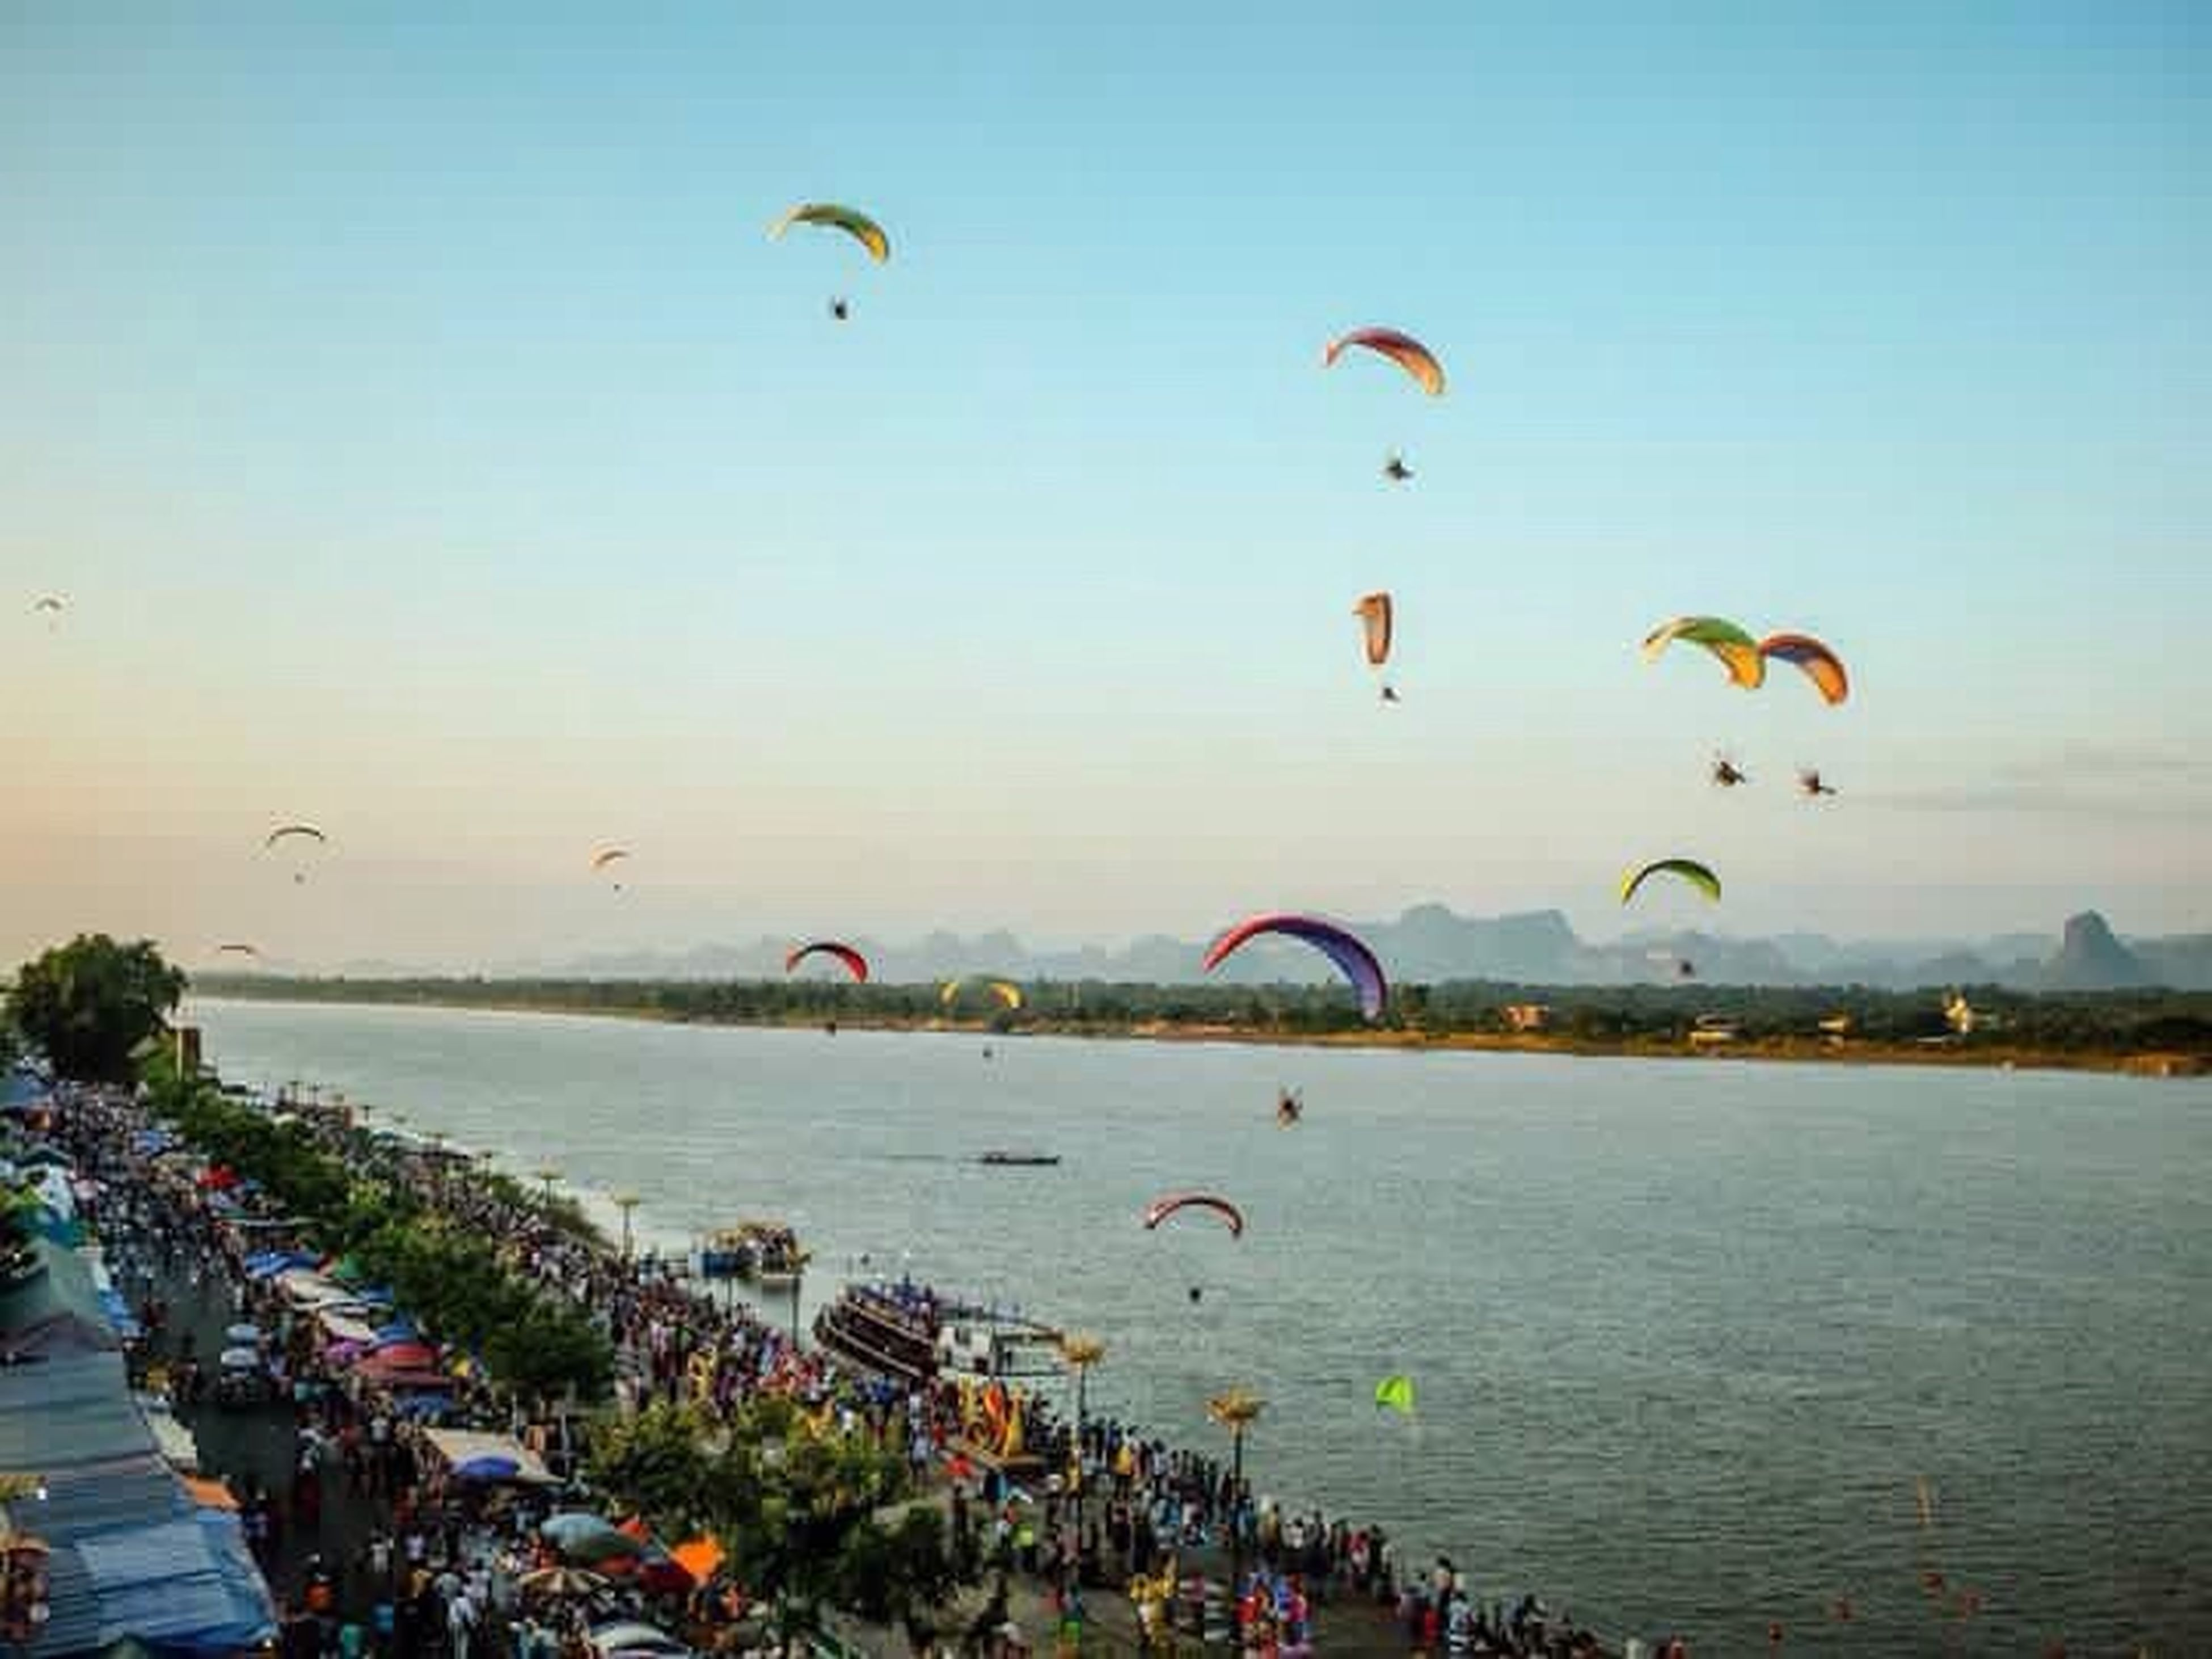 flying, mid-air, water, sea, bird, parachute, transportation, nature, paragliding, tranquility, outdoors, multi colored, scenics, waterfront, blue, day, large group of objects, sky, tranquil scene, mountain, vacations